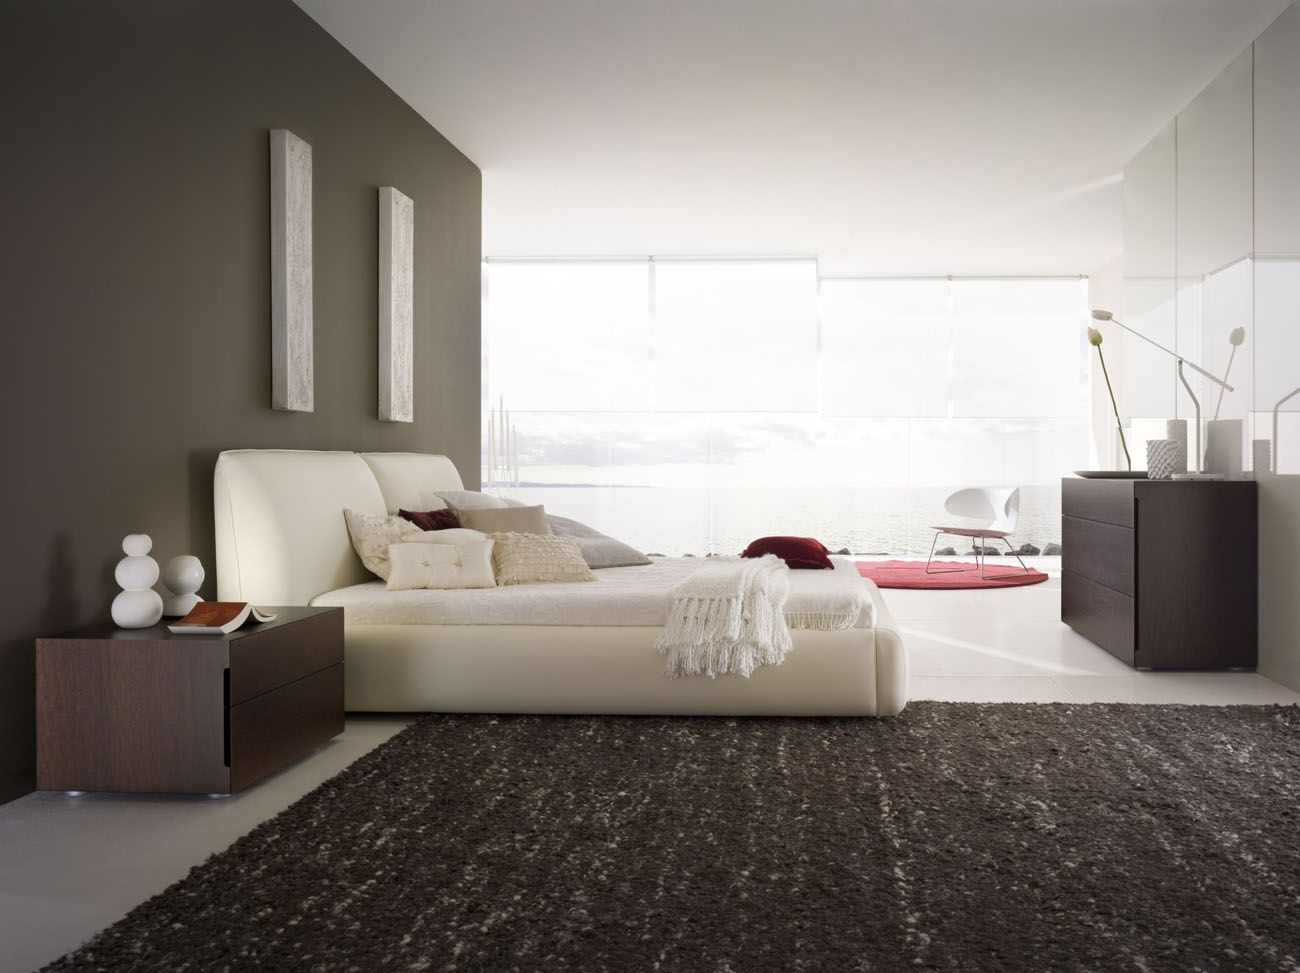 Made in Italy Leather Designer Bedroom Sets with Storage Accessories